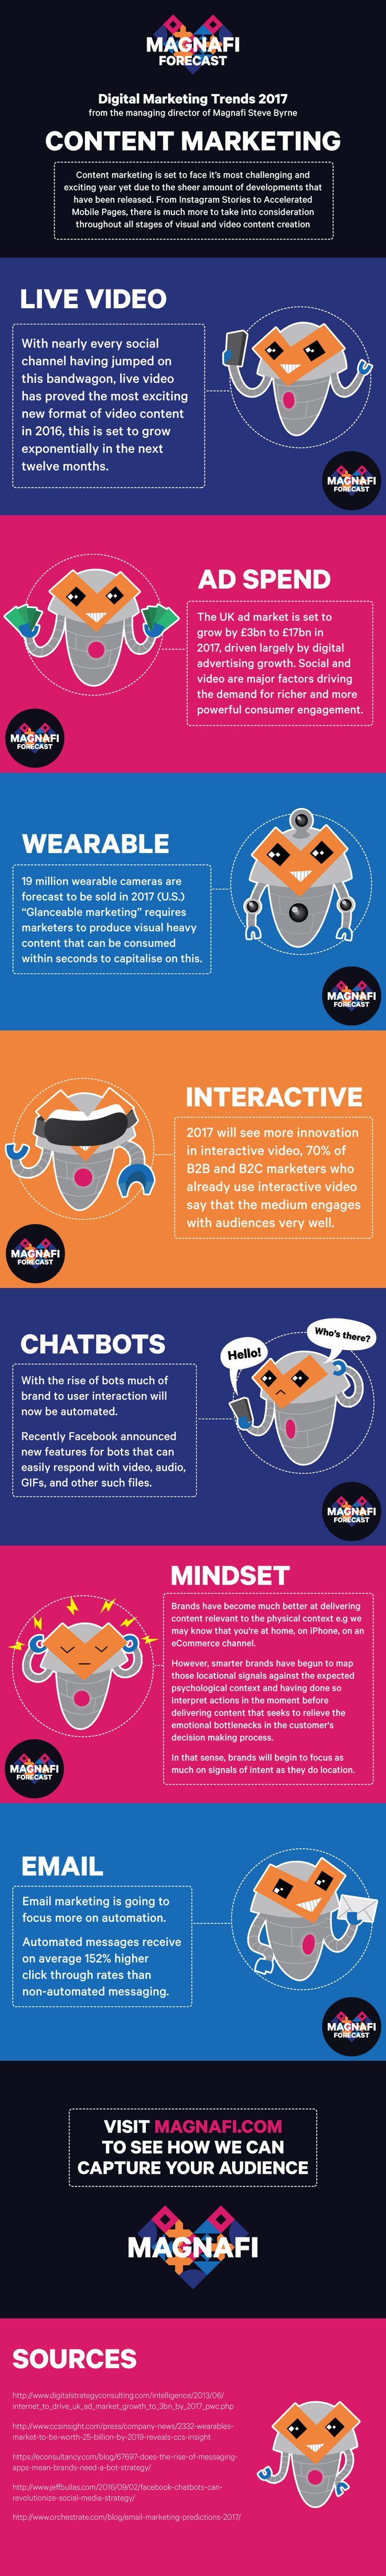 With thanks to our managing director Steve Byrne we have created our own infographic on what we think will be the most important digital marketing trends and changes in the next twelve months. We are including an embed code that you can place on your blog to show that you are ahead of the curve and won't be caught off guard by any of these upcoming trends. #infographics